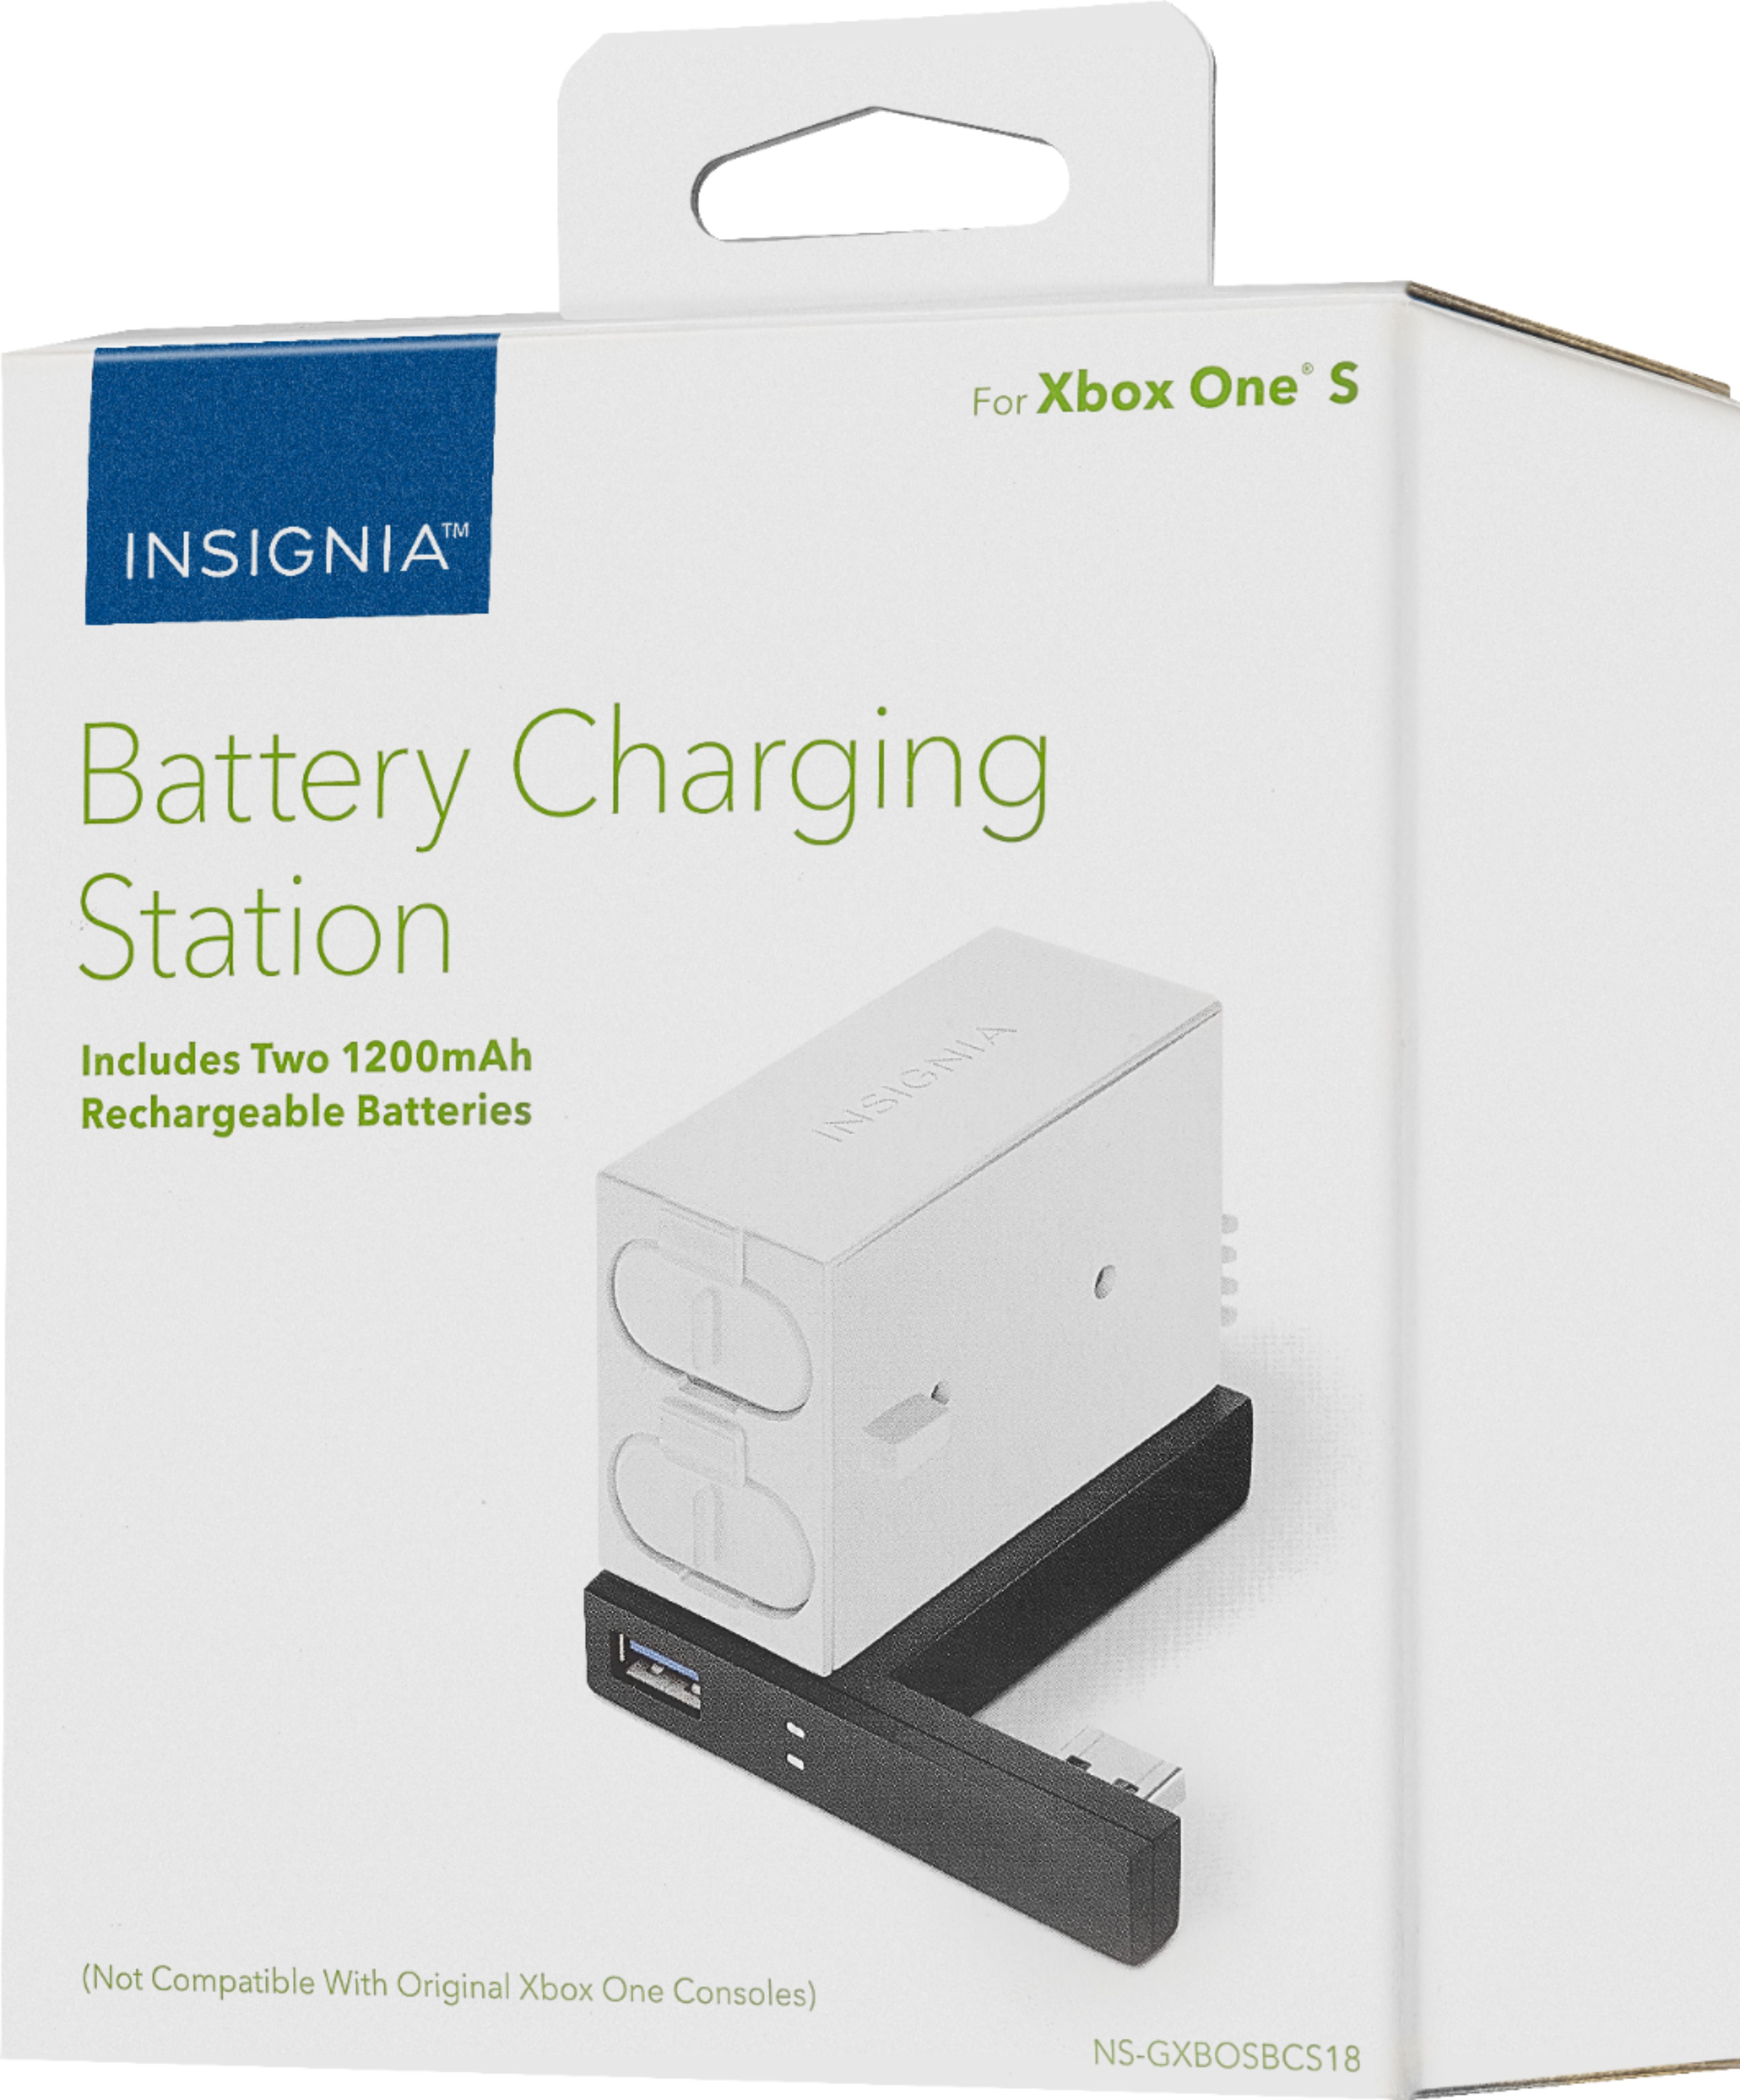 Stylish Charging Station Insignia Battery Charging Station For Xbox One S White